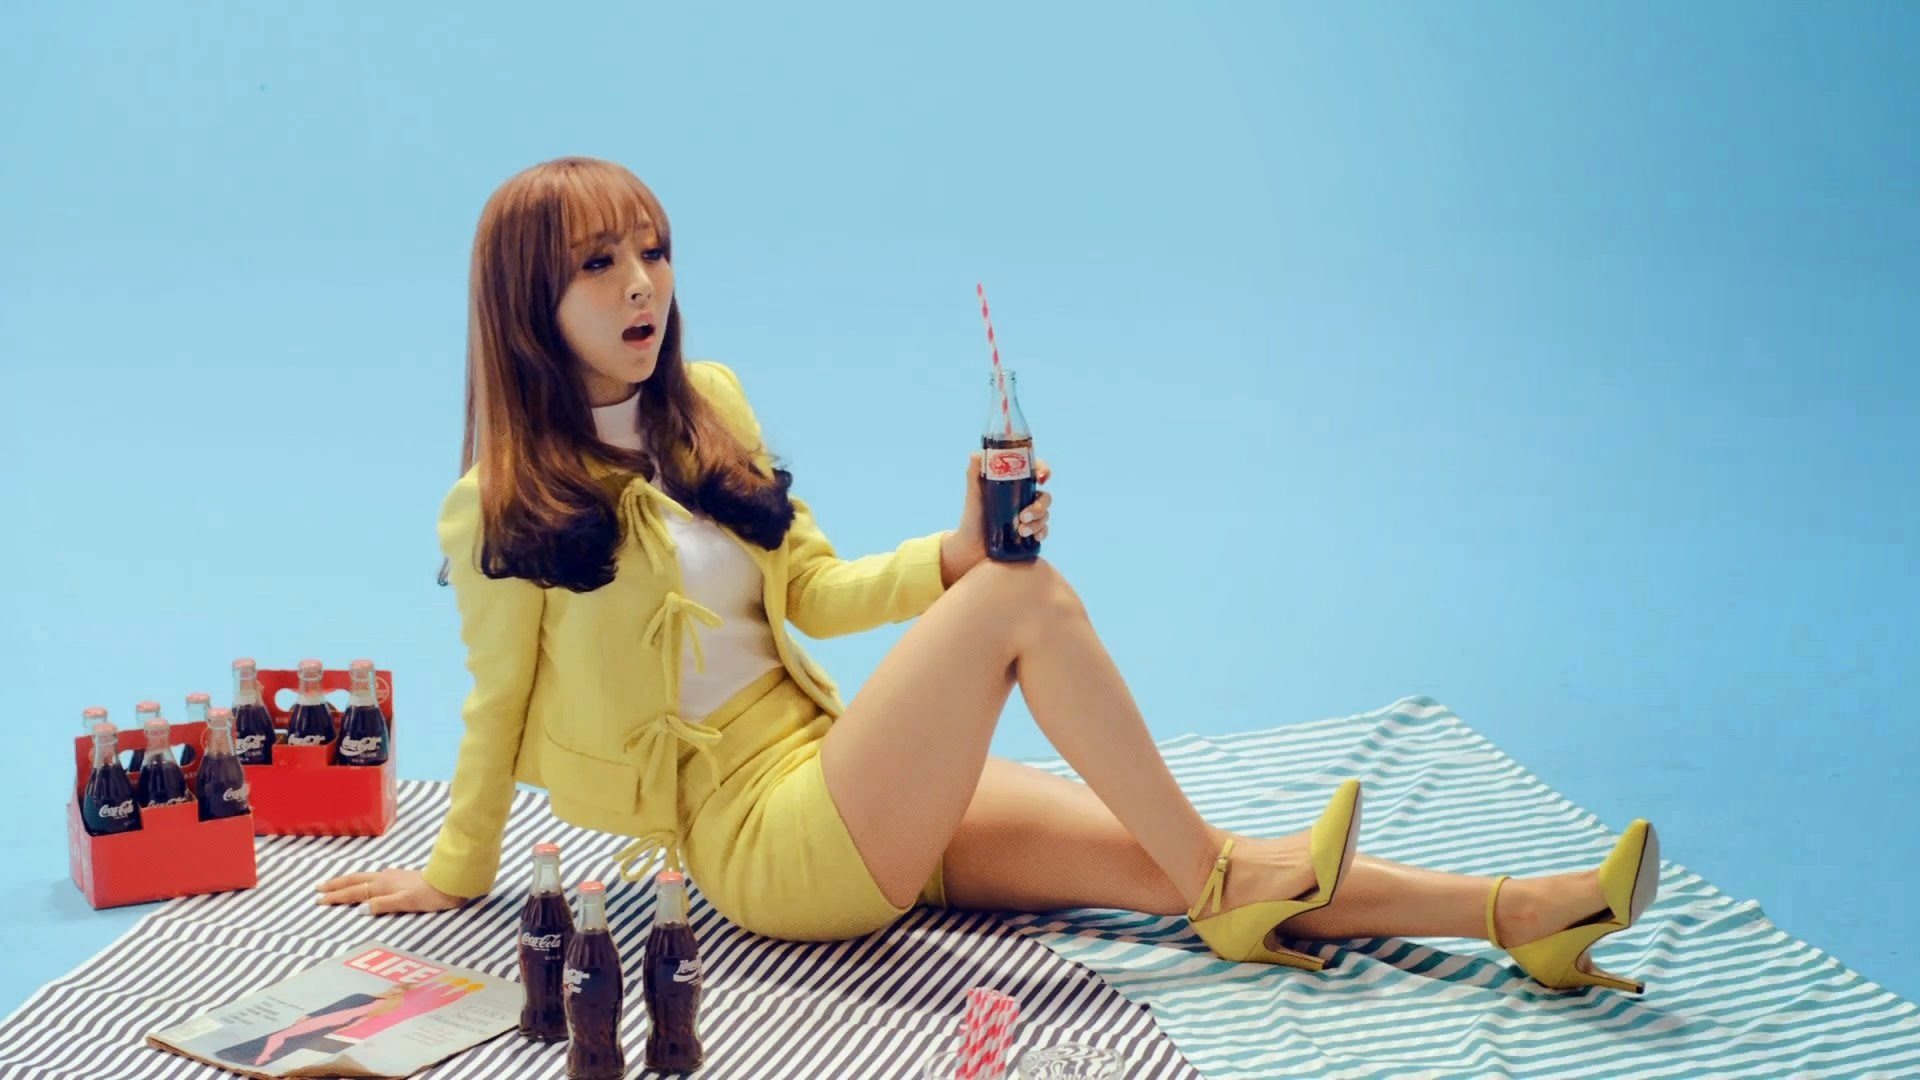 Mamamoo's Moonbyul in Ahh Oop MV